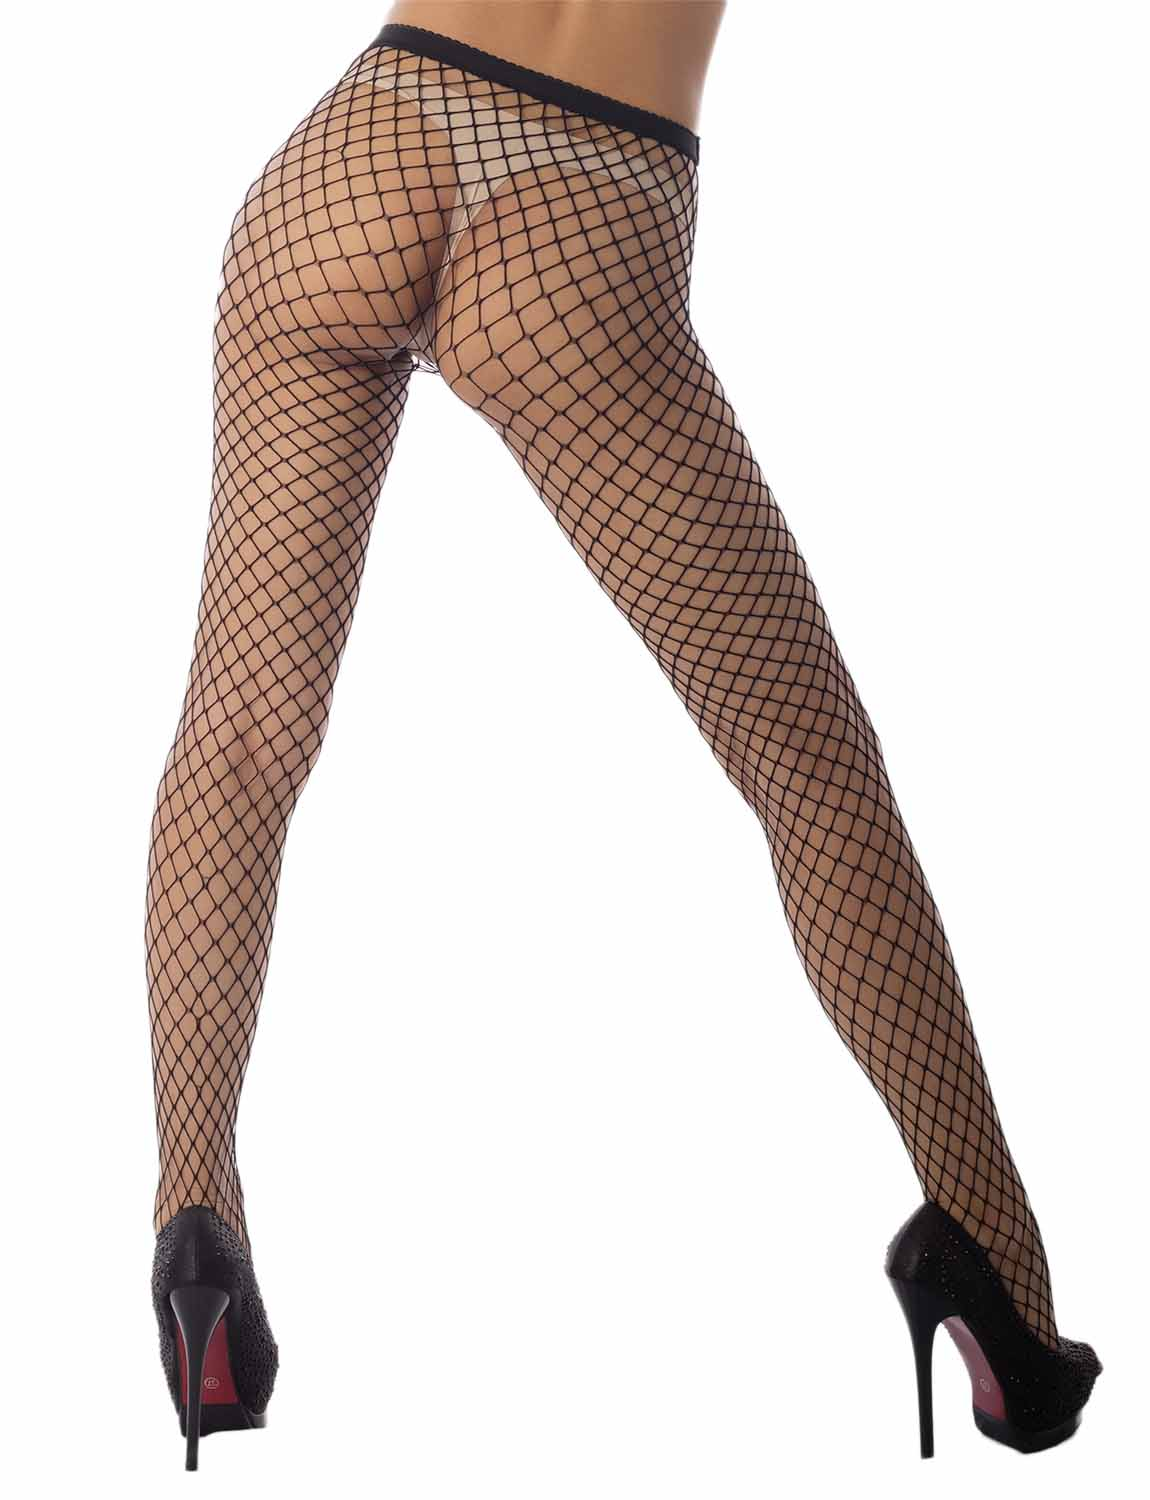 Women's Stretch Fishinet Tights For Ripped Jeans Mid Waist Sexy Stockings, Size: One Size, M2 Black